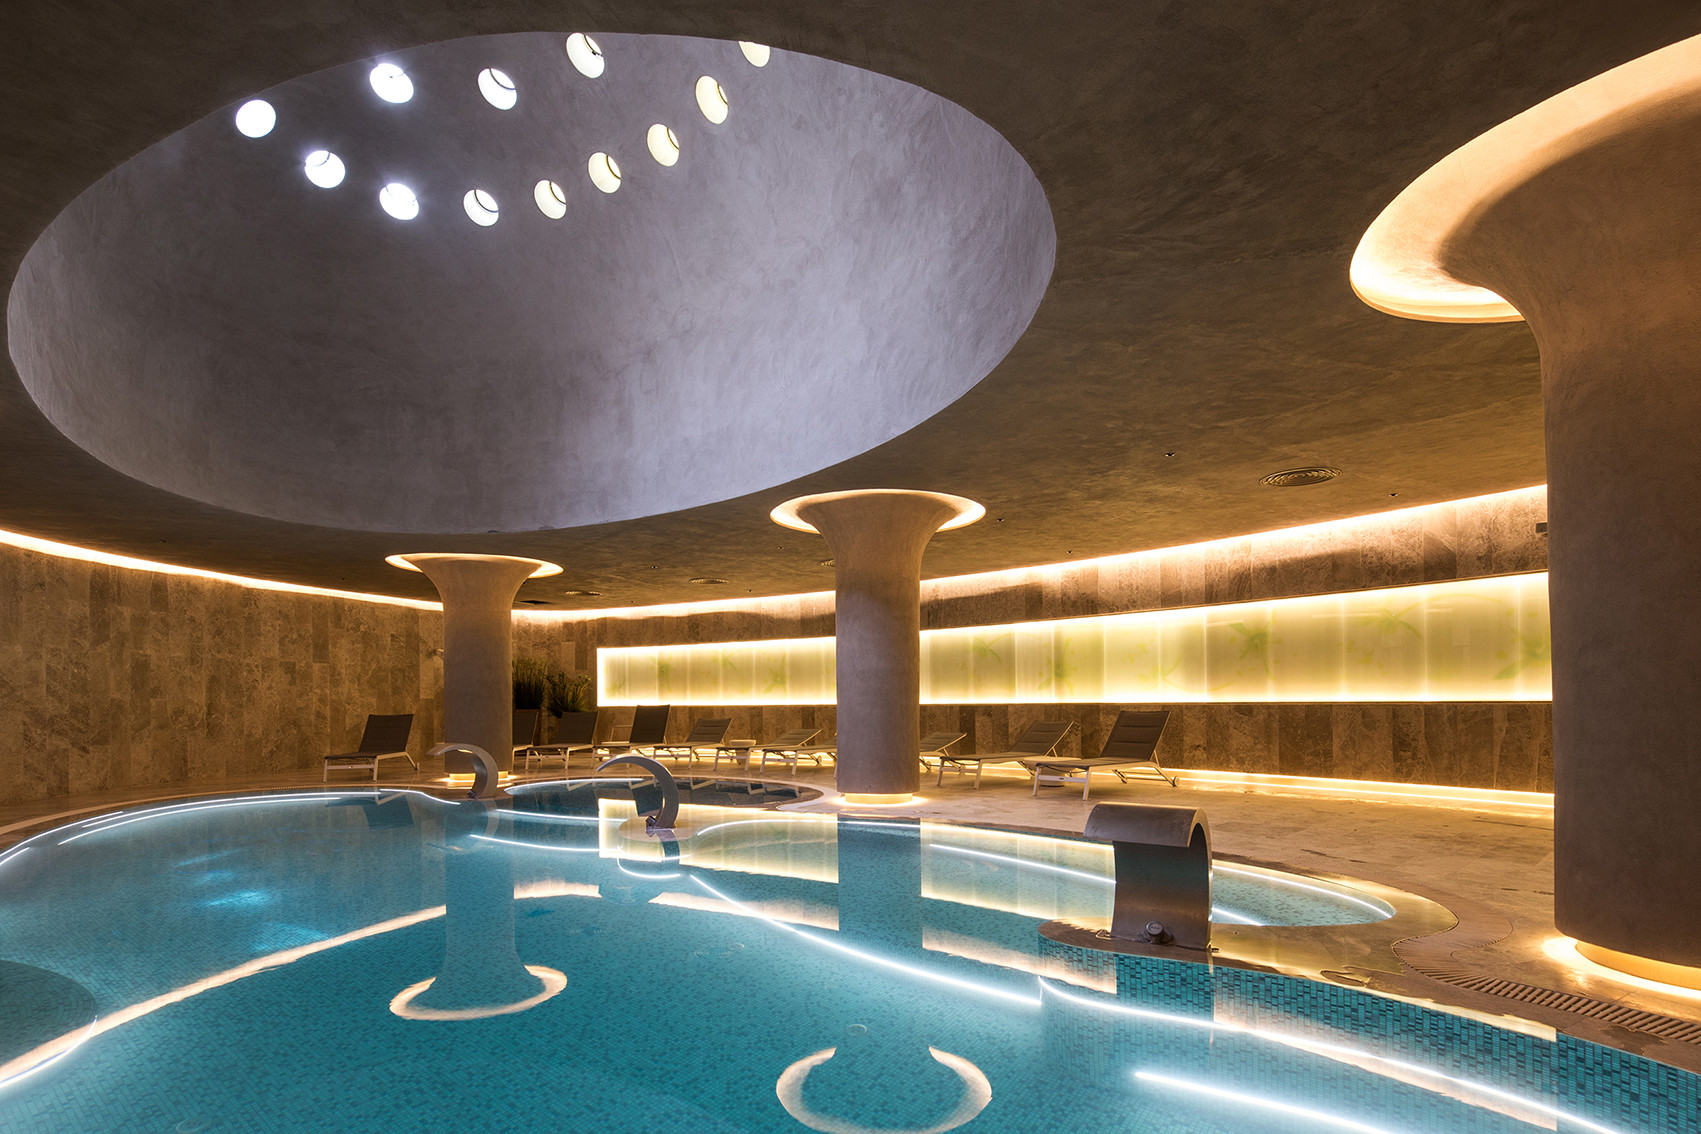 Eskisehir hotel and spa gad architecture archdaily for Design hotel spa